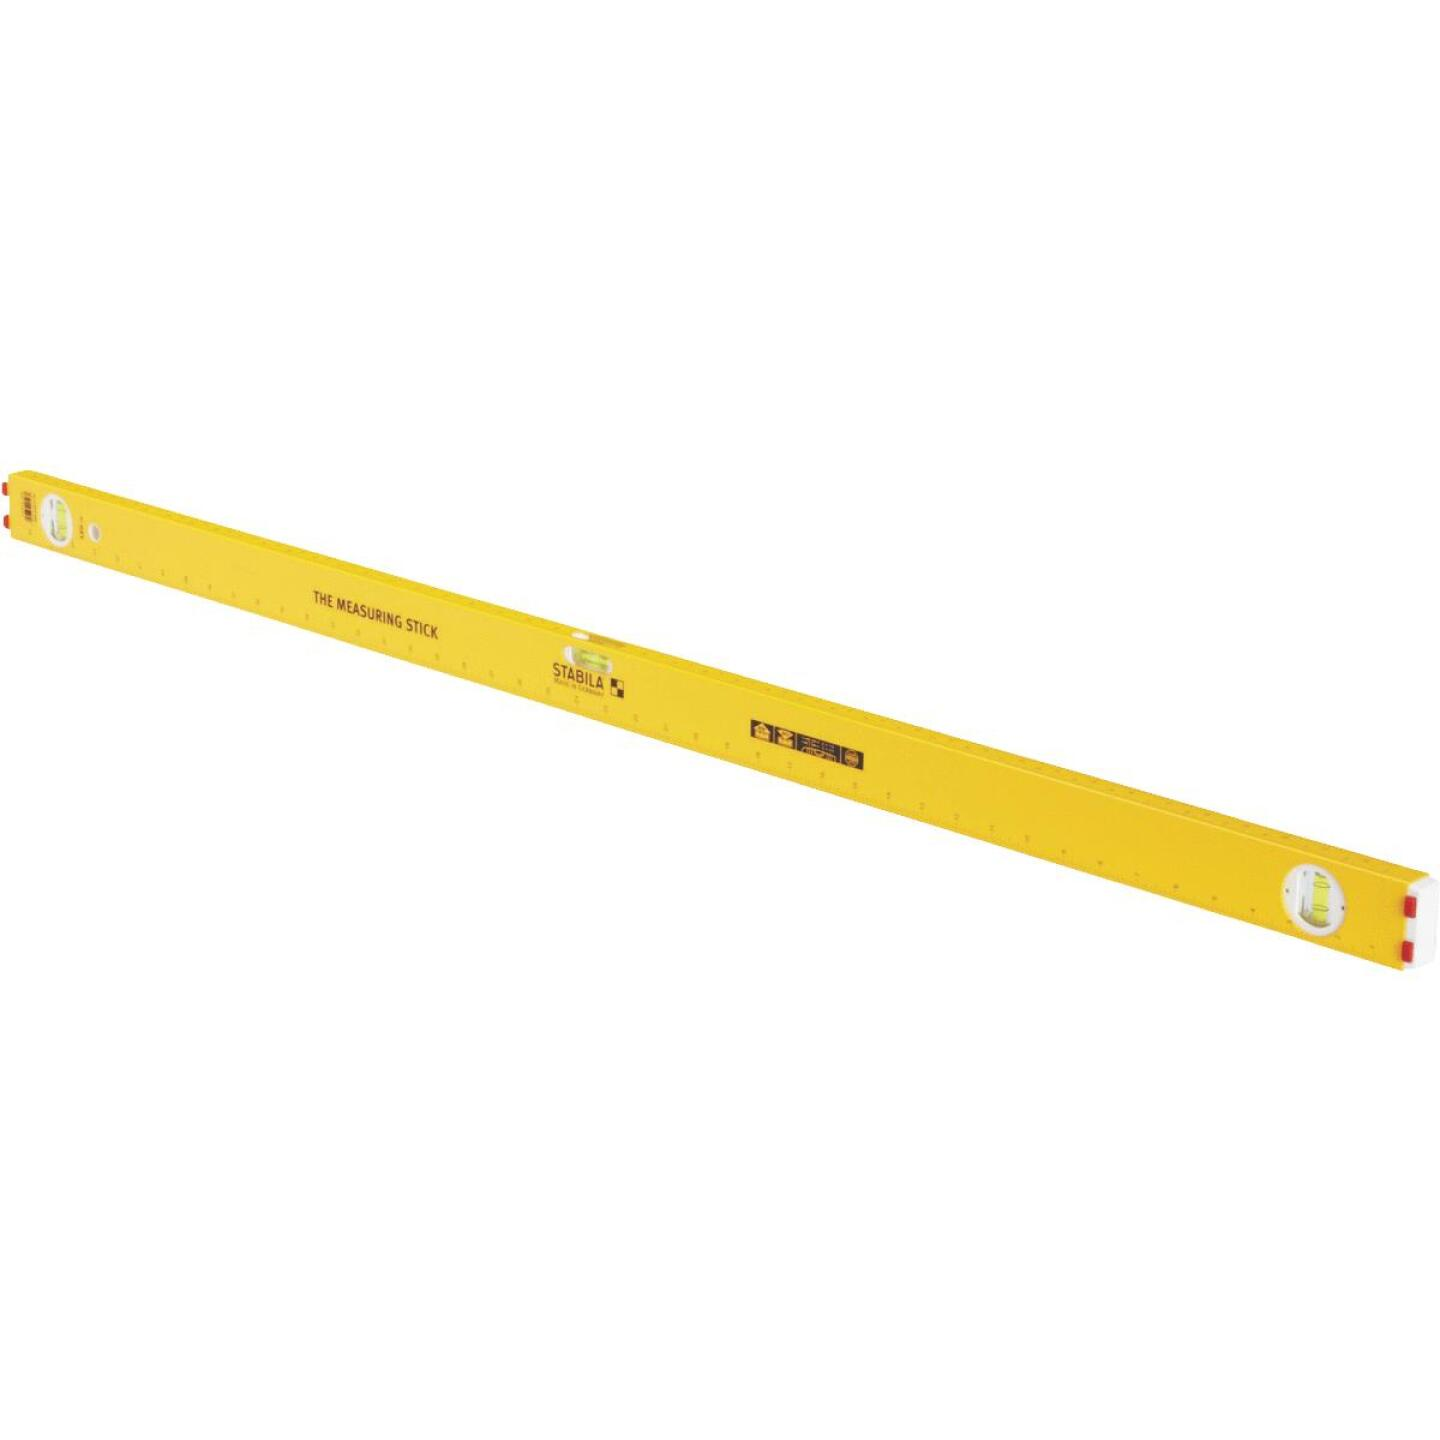 Stabila Measuring Stick 48 In. Aluminum Box Level Image 2